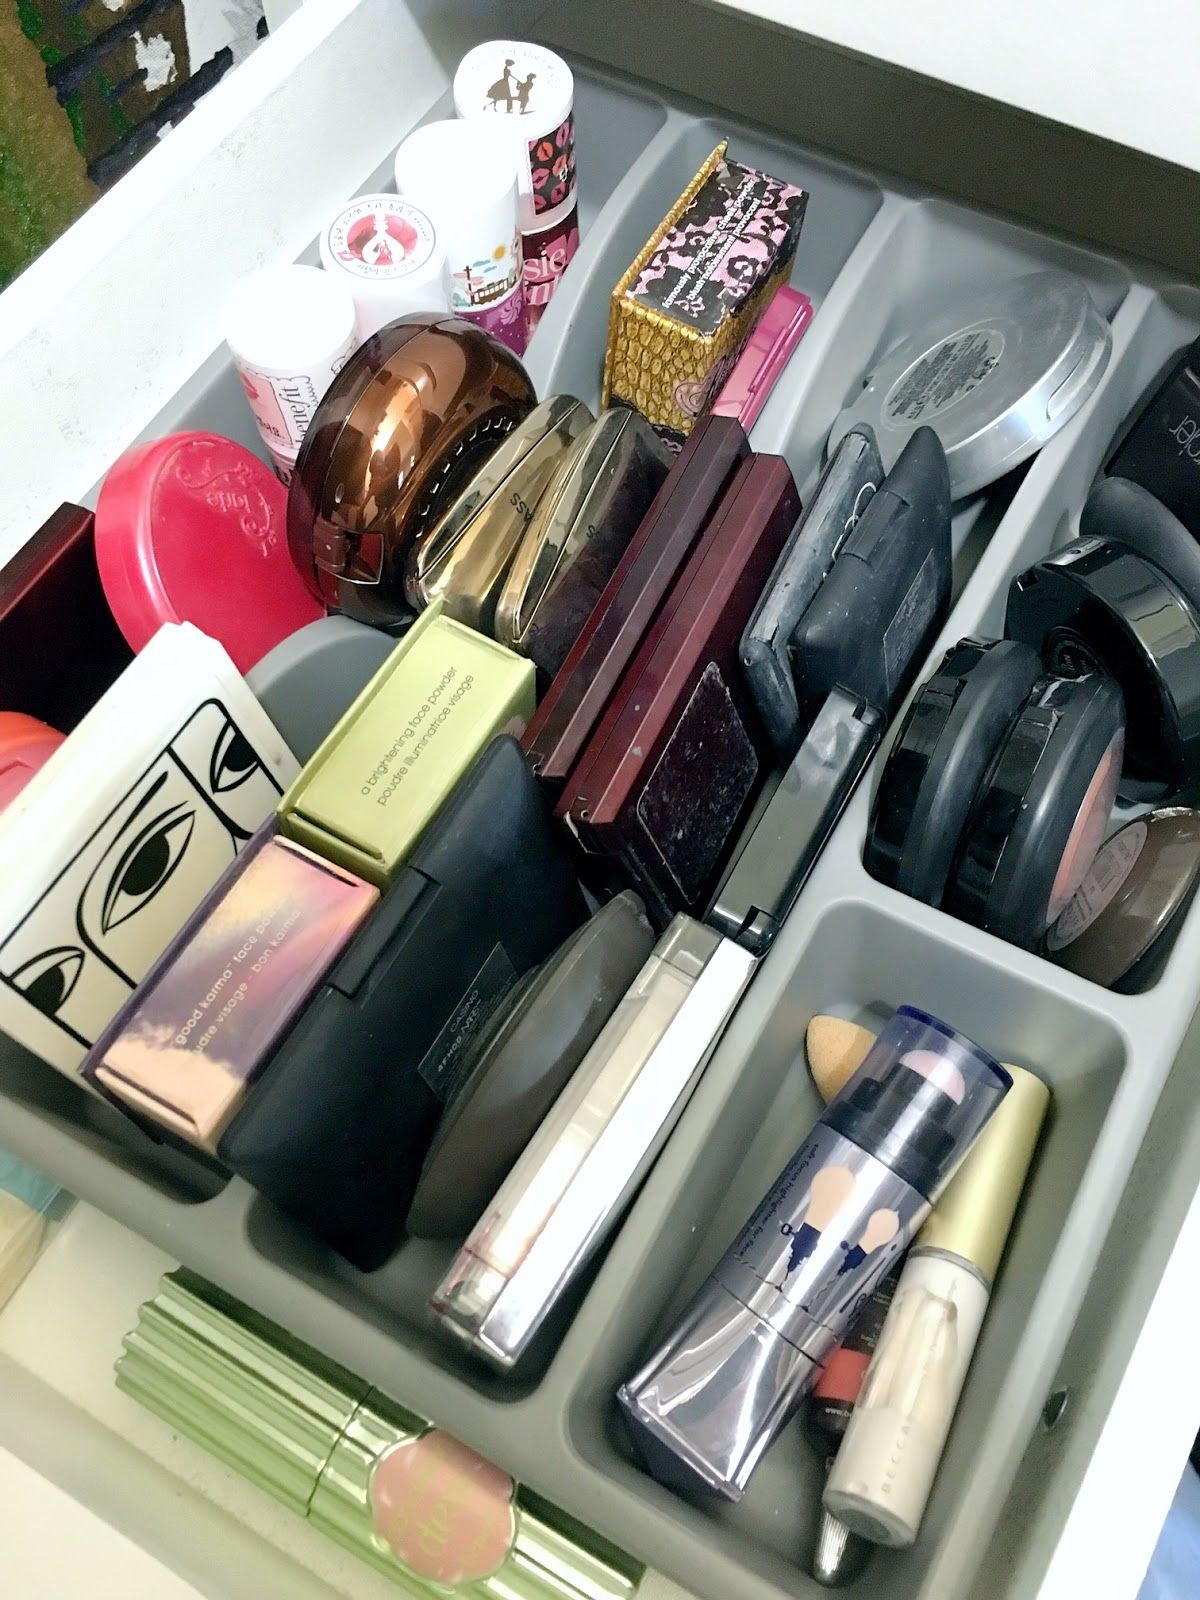 Here are 10 tips to teach you how to declutter your makeup